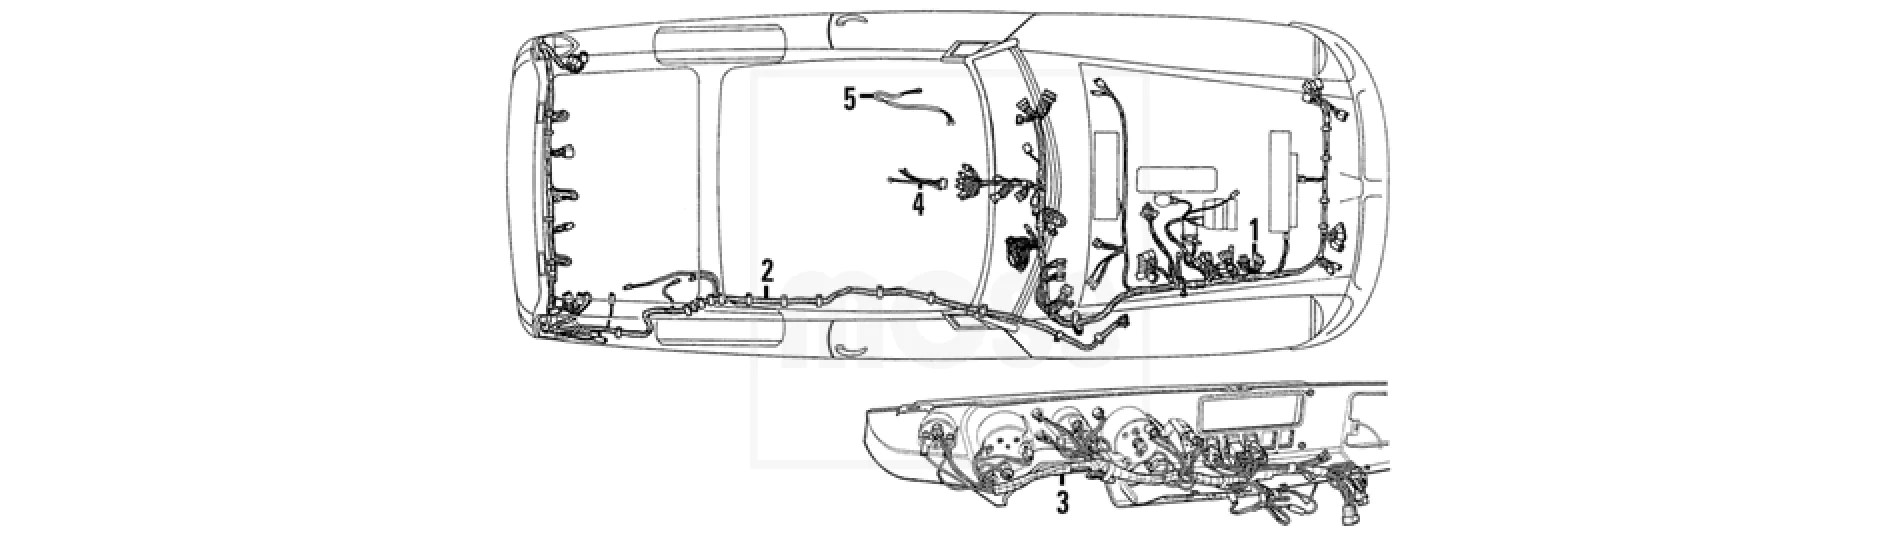 hight resolution of 1977 mgb wiring harnes diagram